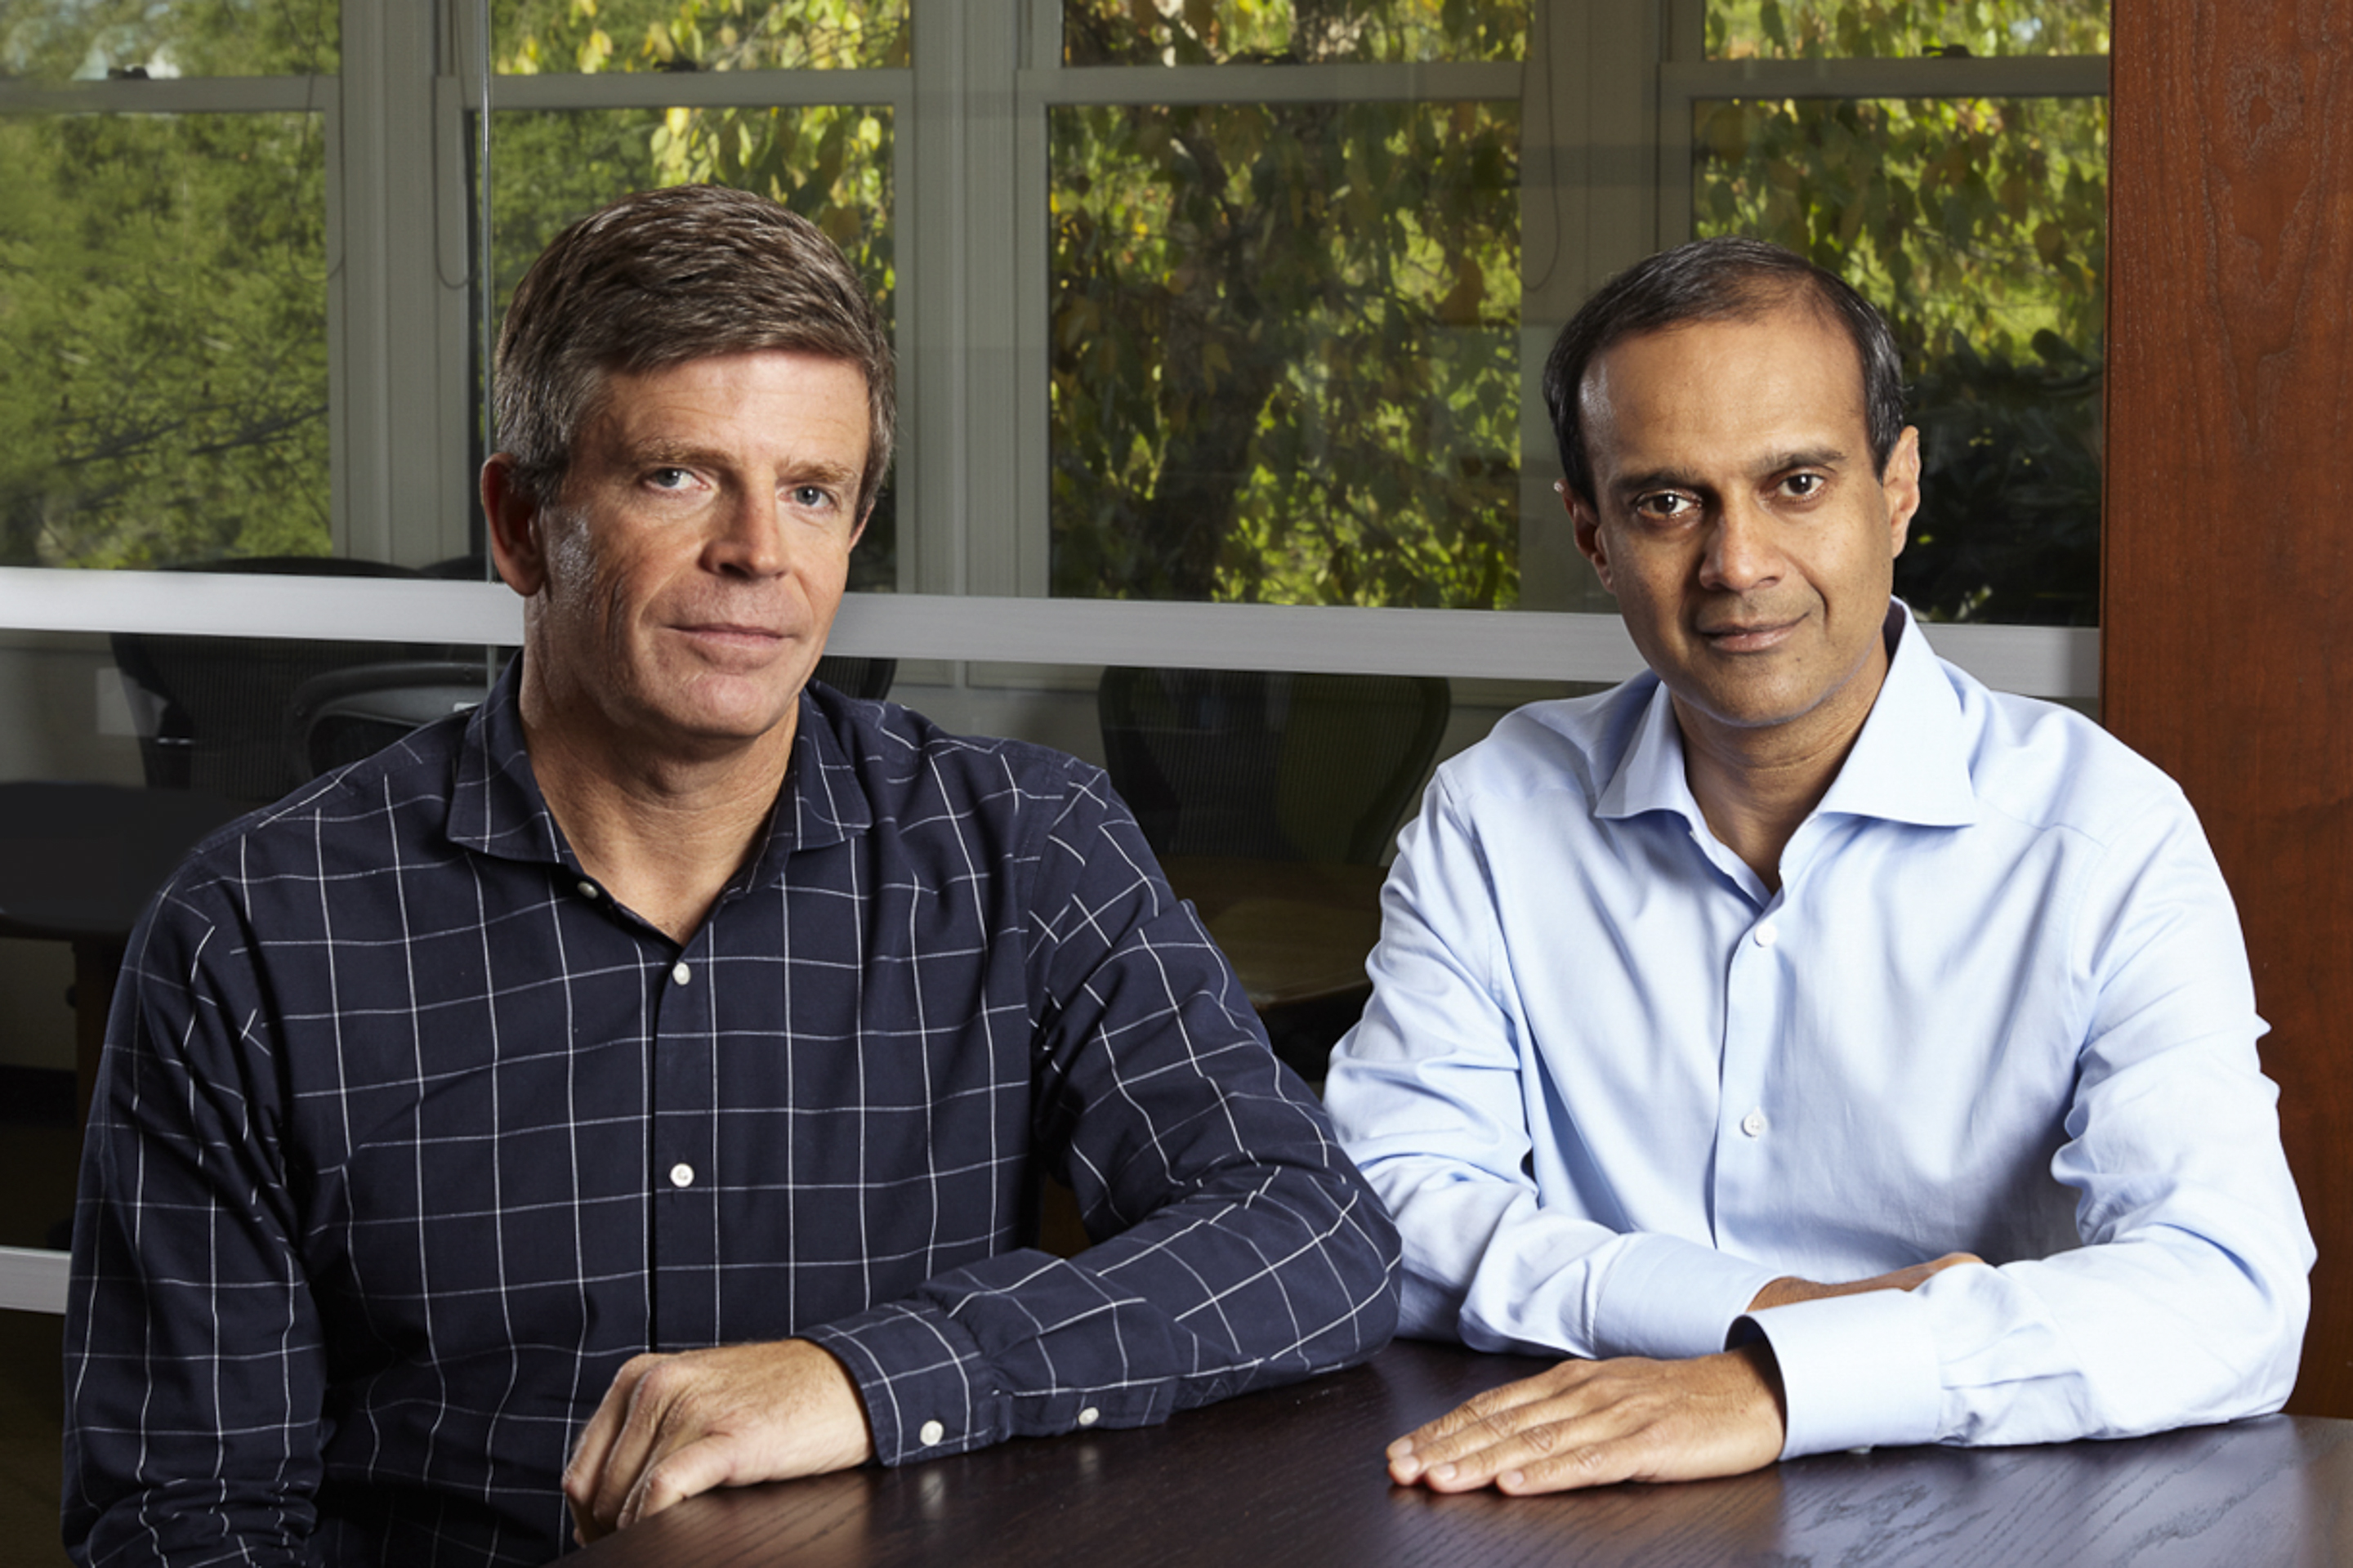 Peter Wagner and Gaurav Garg, co-founders of Wing Venture Capital. On Wednesday, Wing announced it has closed Wing Two, its $250 million second fund. (Photo: Business Wire)